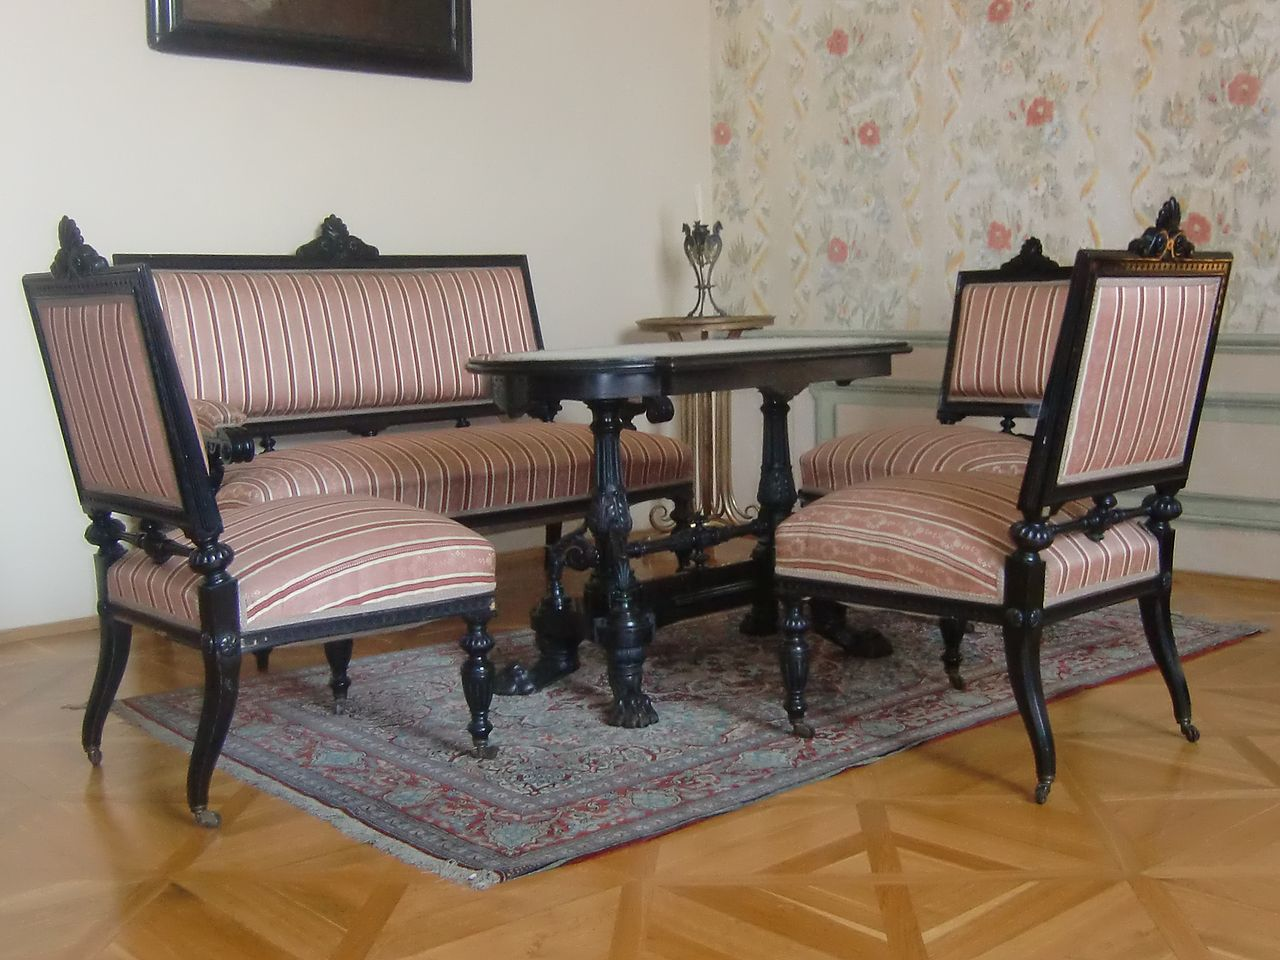 Historicist_furniture_set